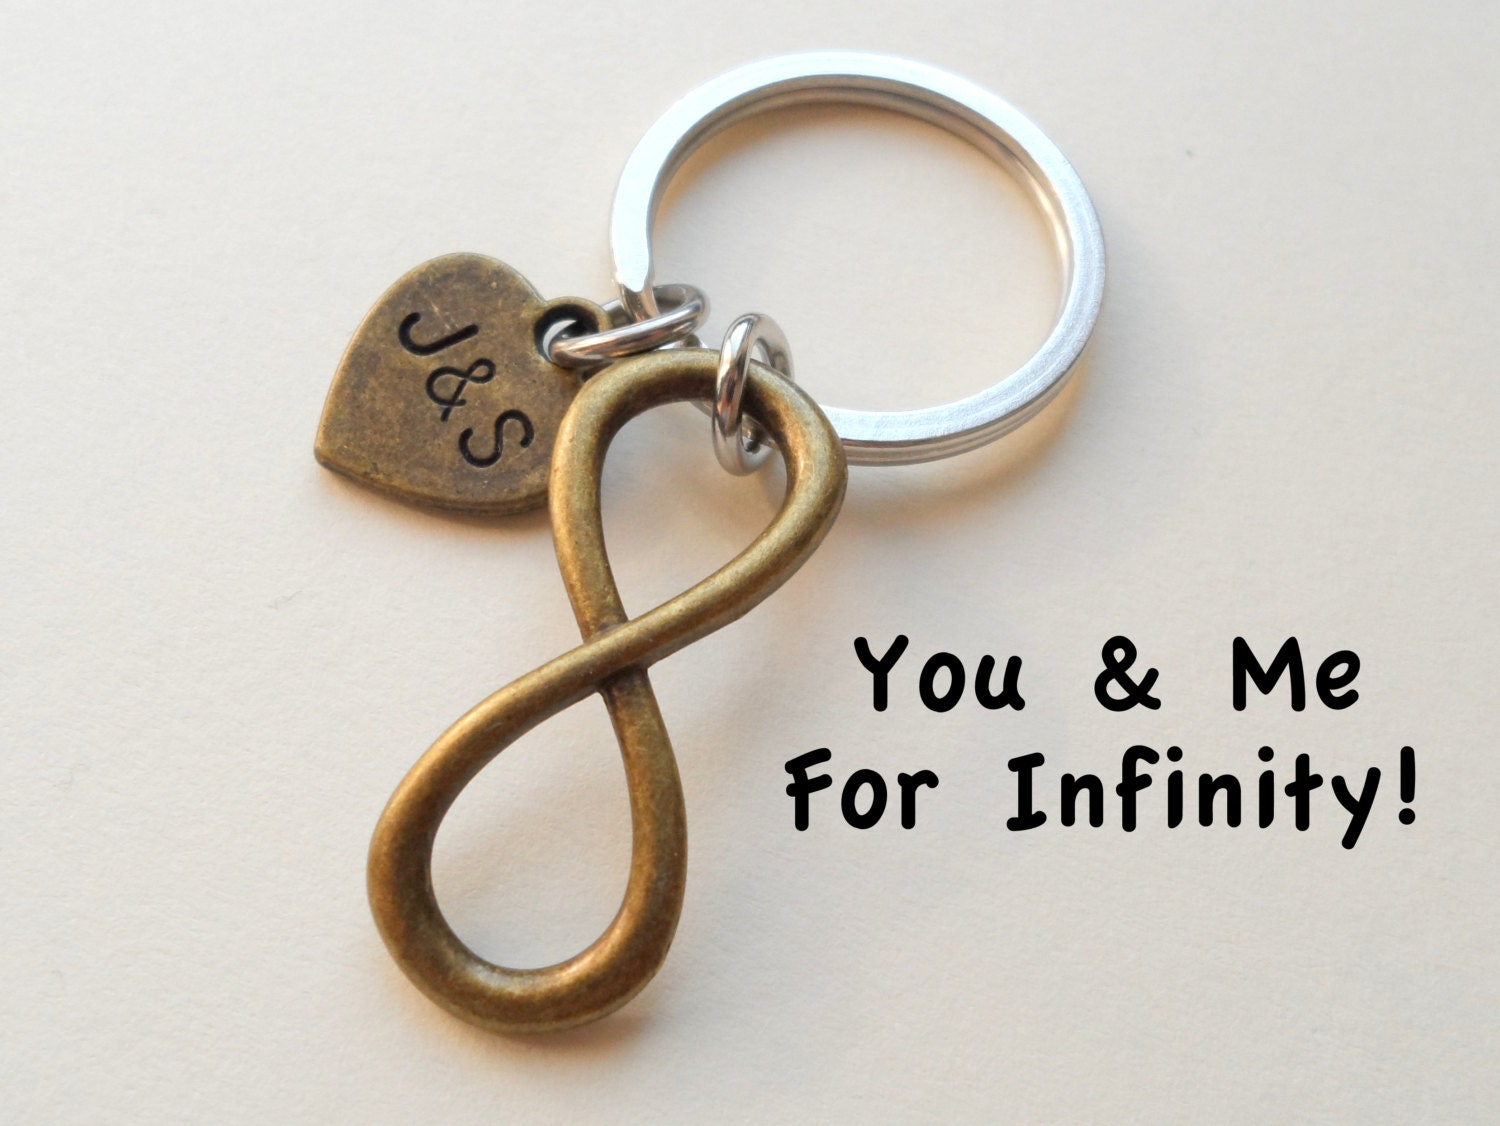 Wedding Gifts For 8 Year Anniversary : Bronze Infinity Symbol Keychain Gift Couples Anniversary